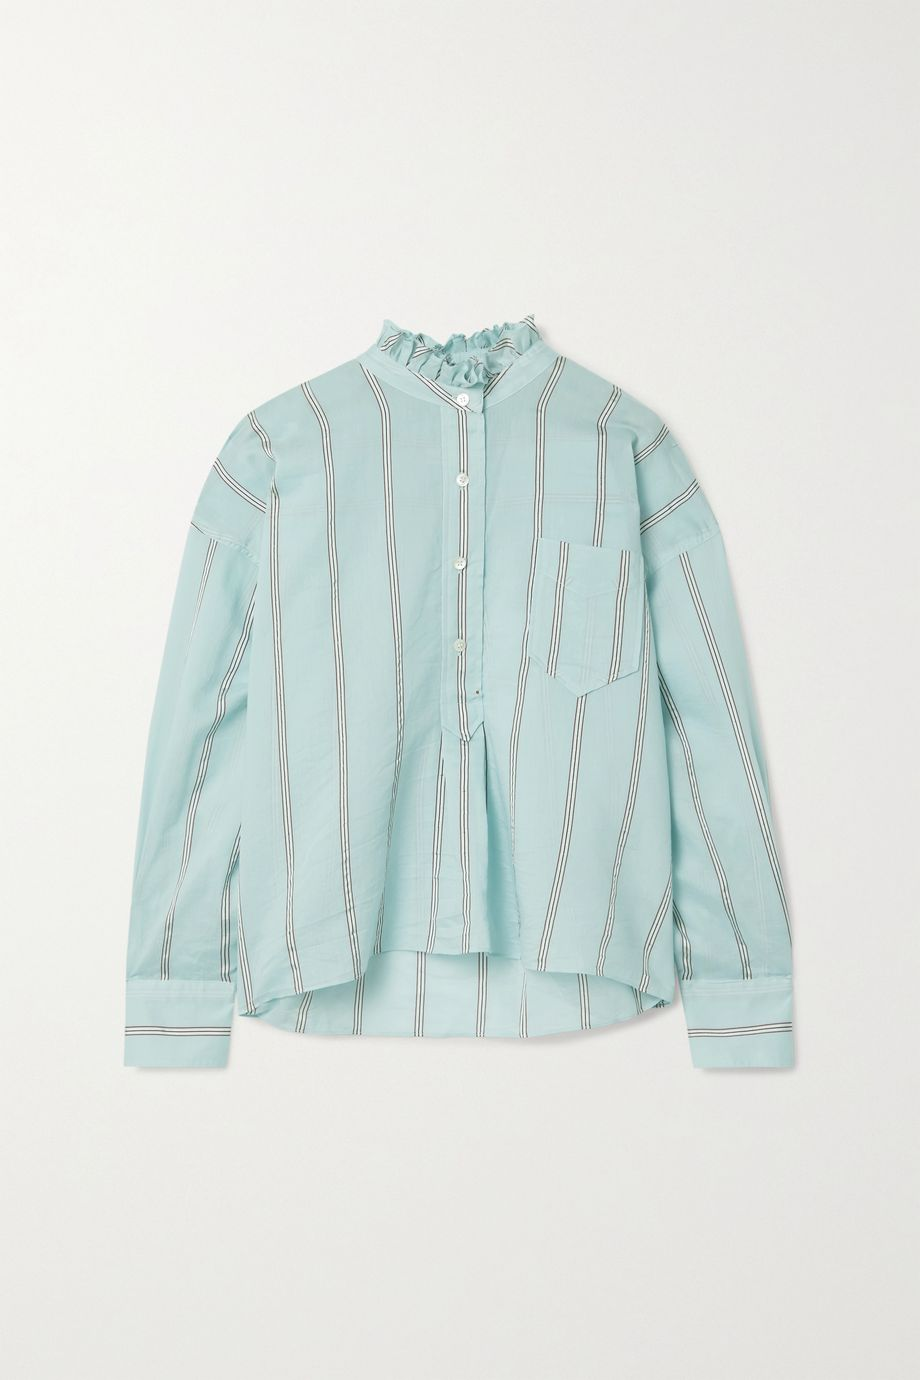 Isabel Marant Étoile Olena oversized ruffled striped cotton-blend voile shirt